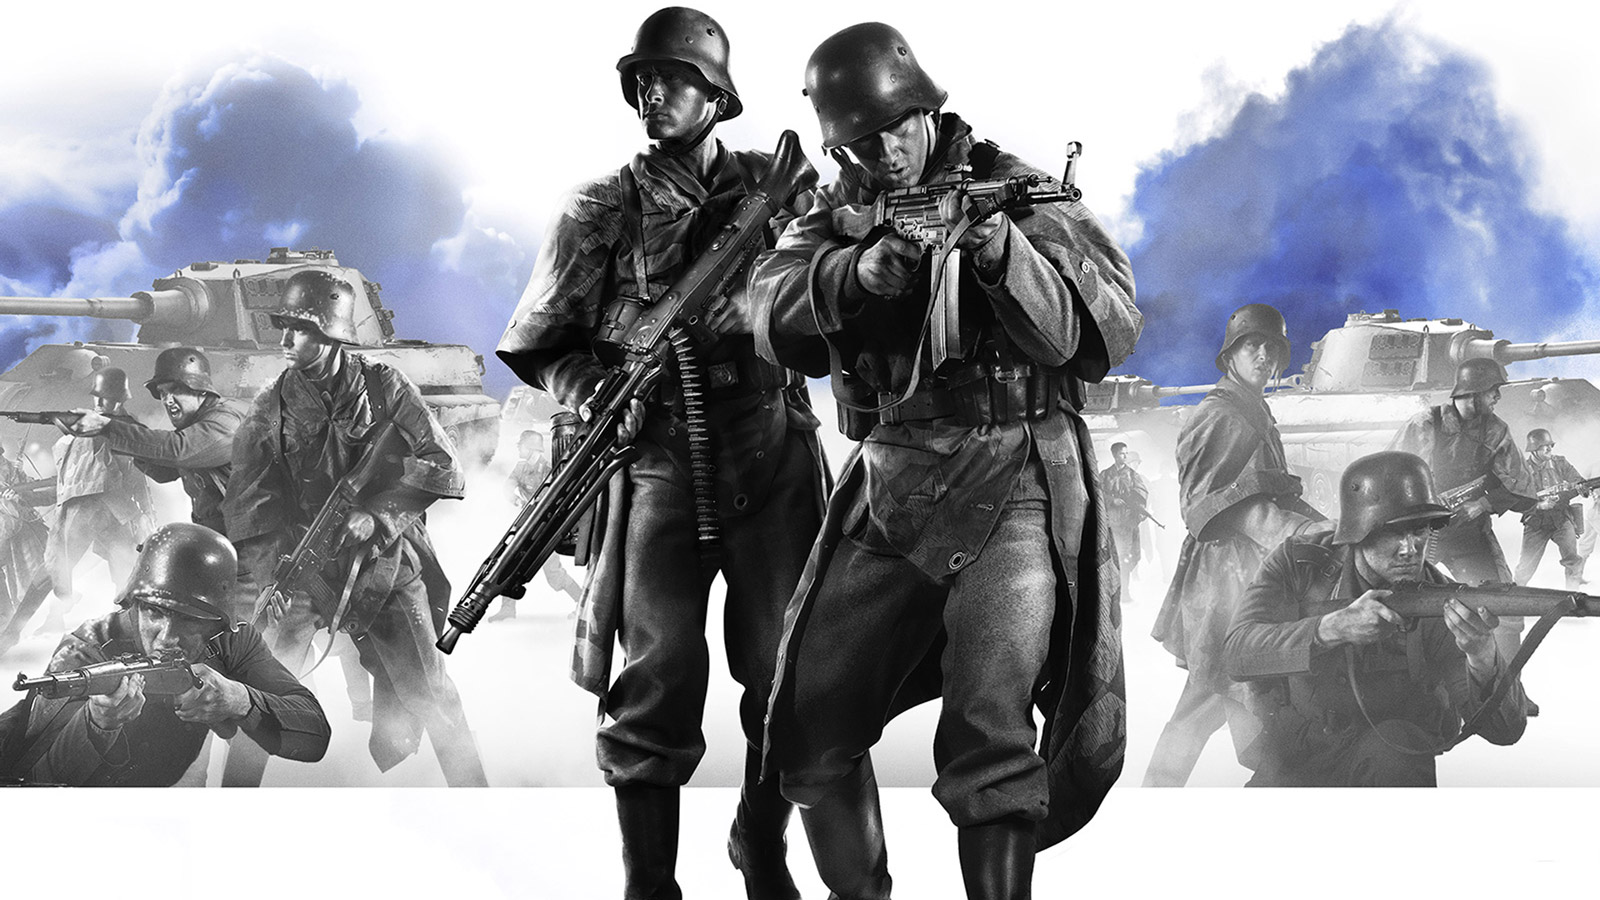 Free Company of Heroes 2 Wallpaper in 1600x900